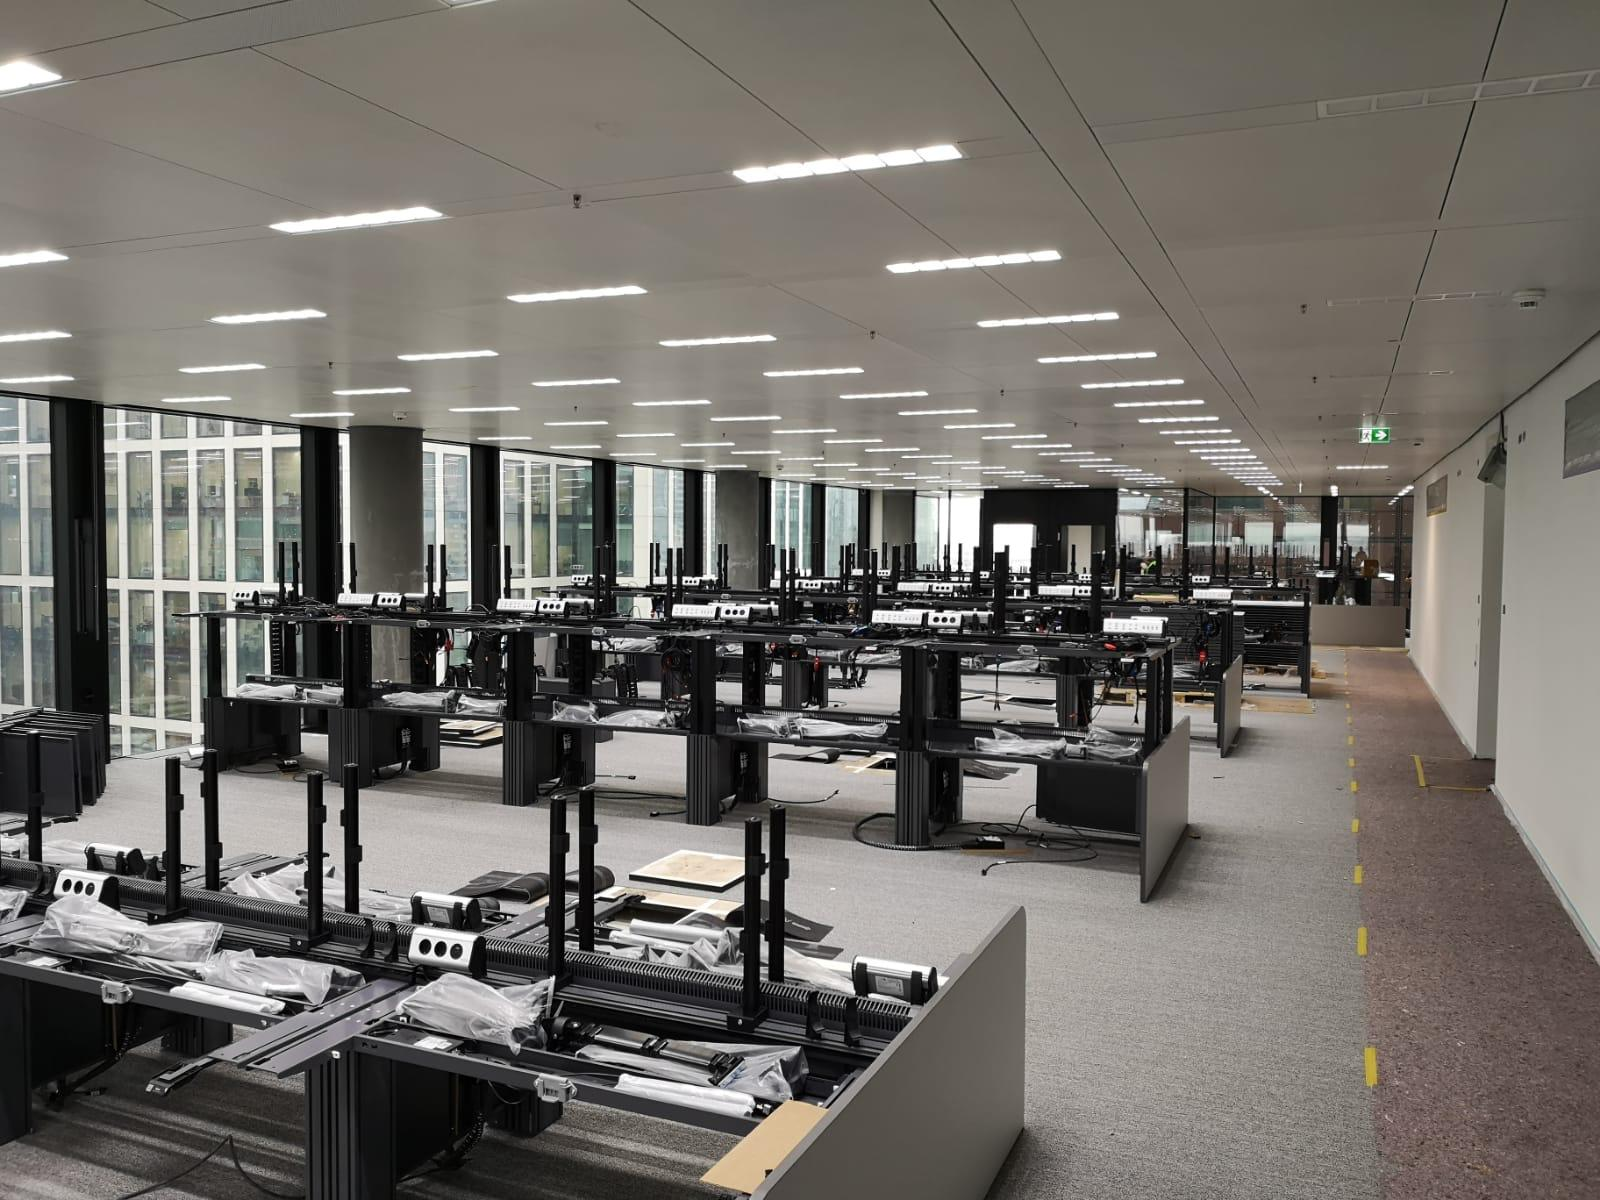 Rows of dT11 Trading Desks